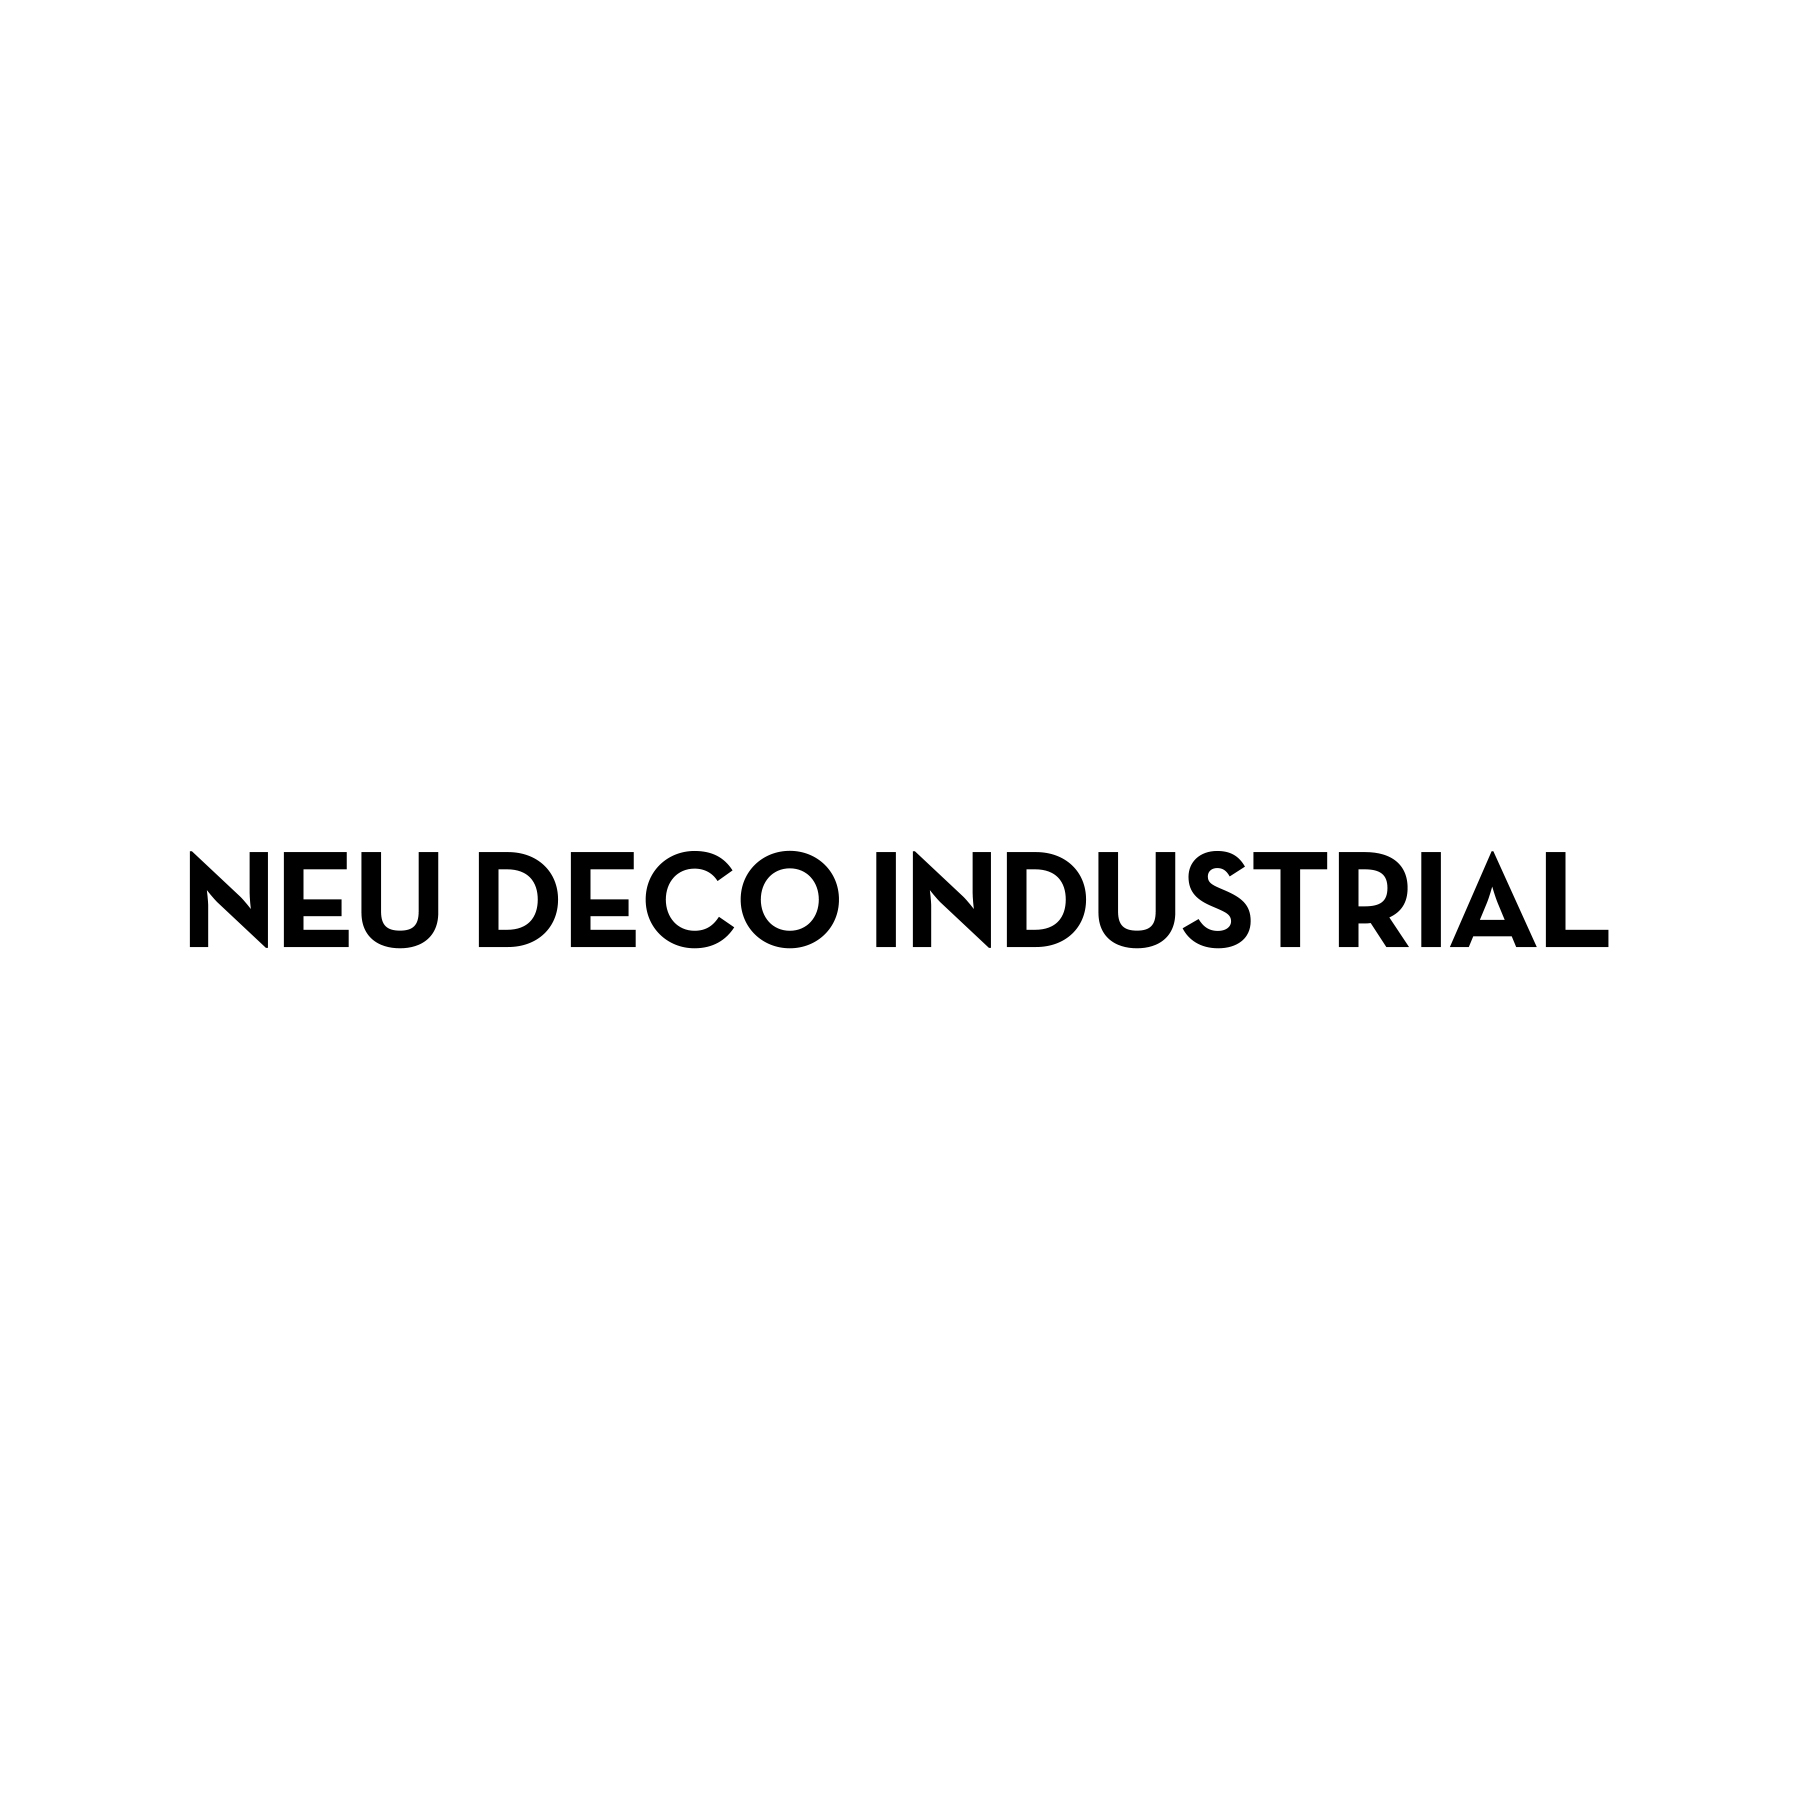 Neu Deco Industrial Font Option Budget Logo Express by Brand G Creative 07 OCTOBER 2017.jpg